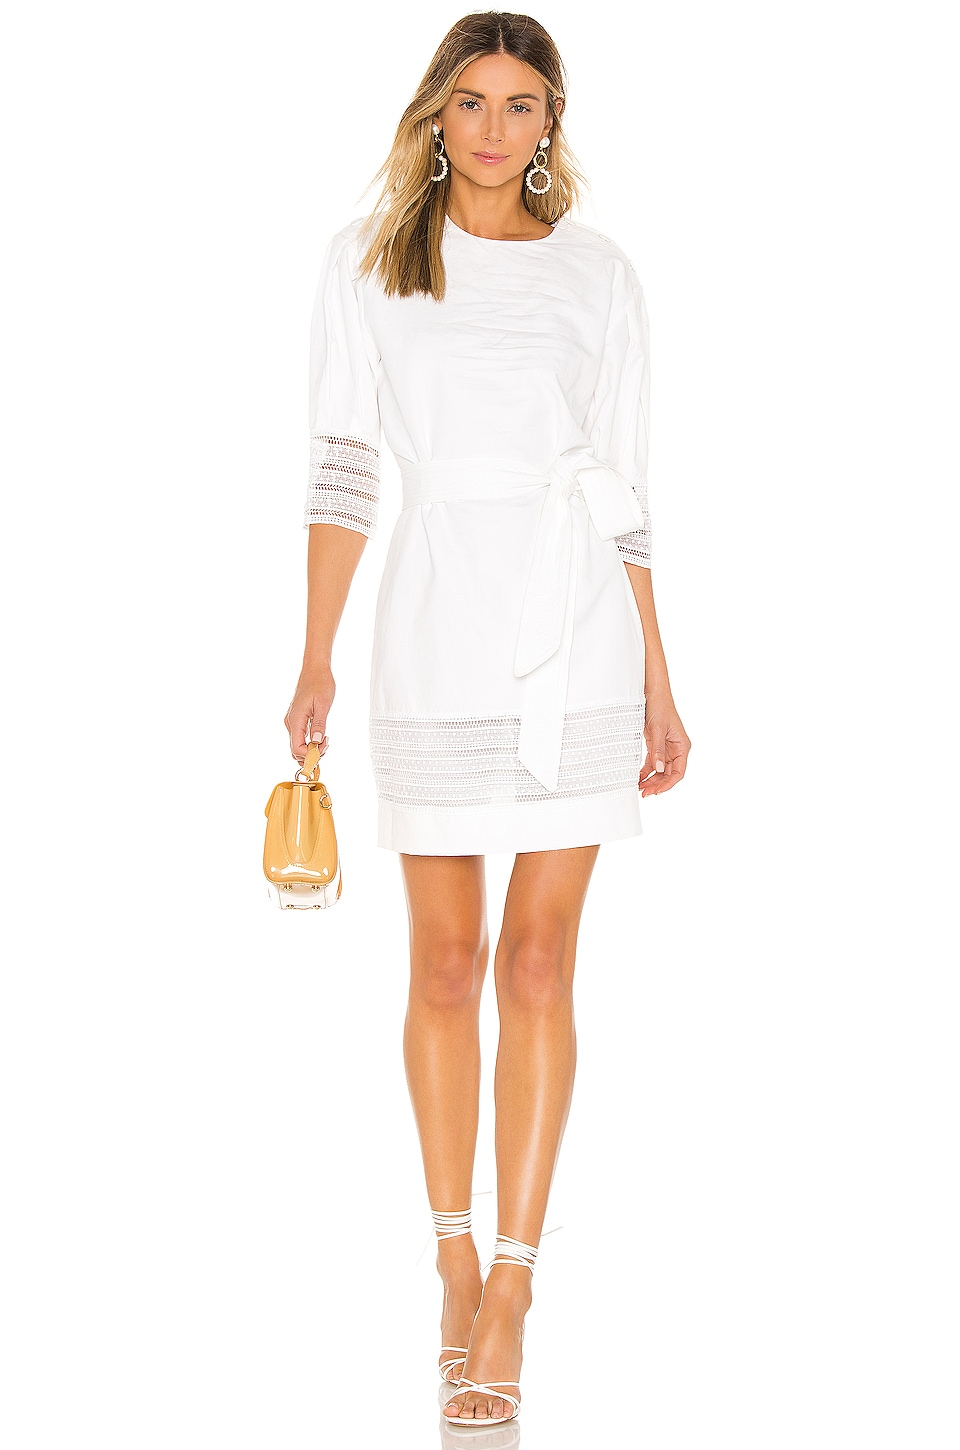 Rebecca Minkoff Georgina Dress in Bright White